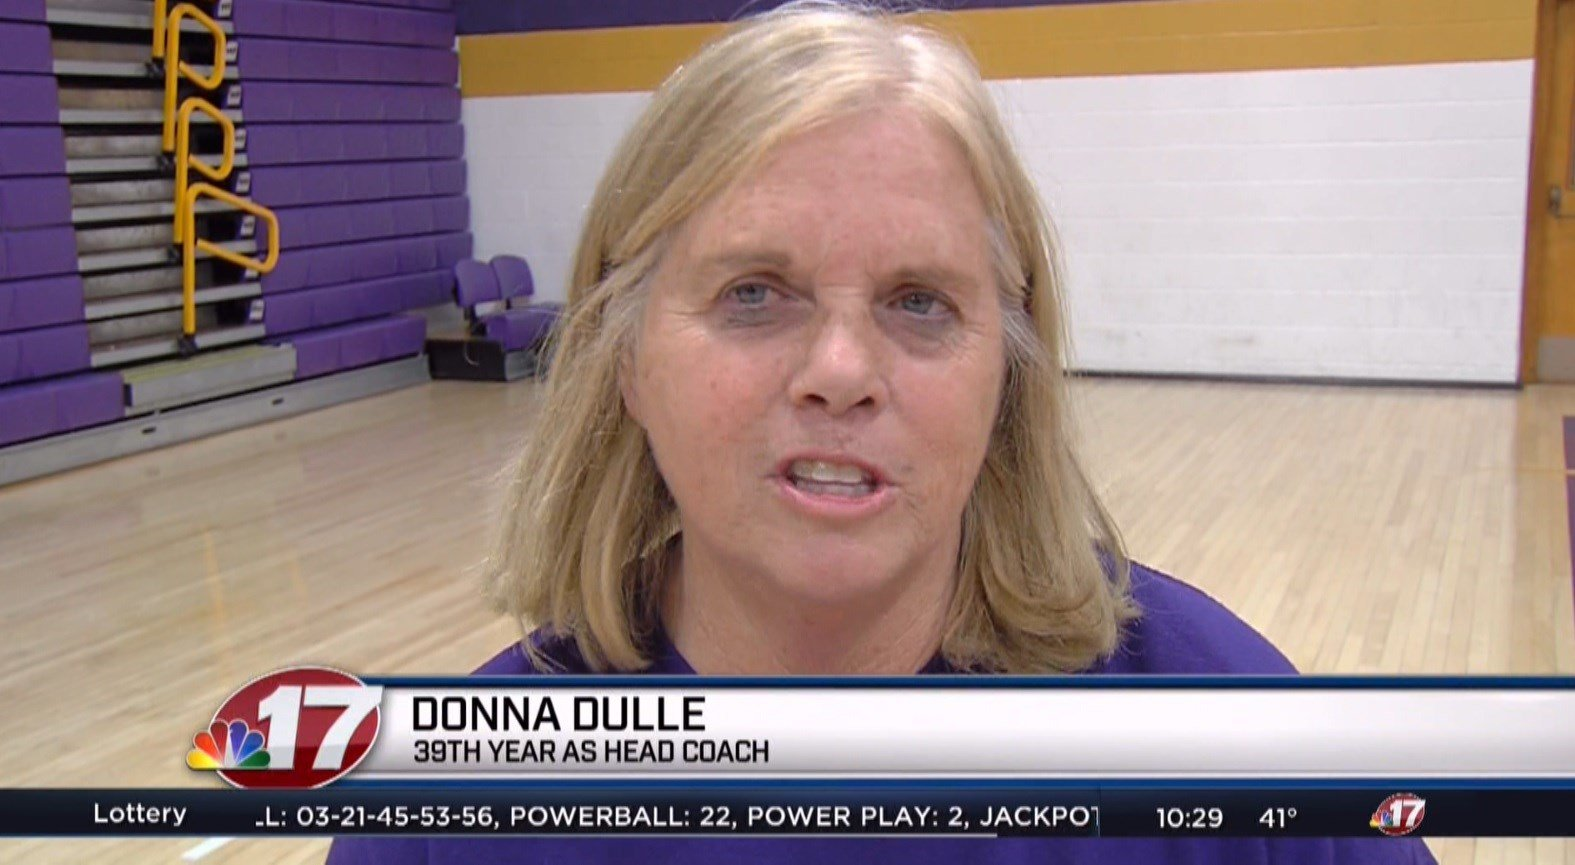 Donna Dulle and the Mt. Pulaski Hilltoppers are a No. 1 seed in the Class 1A volleyball playoffs.